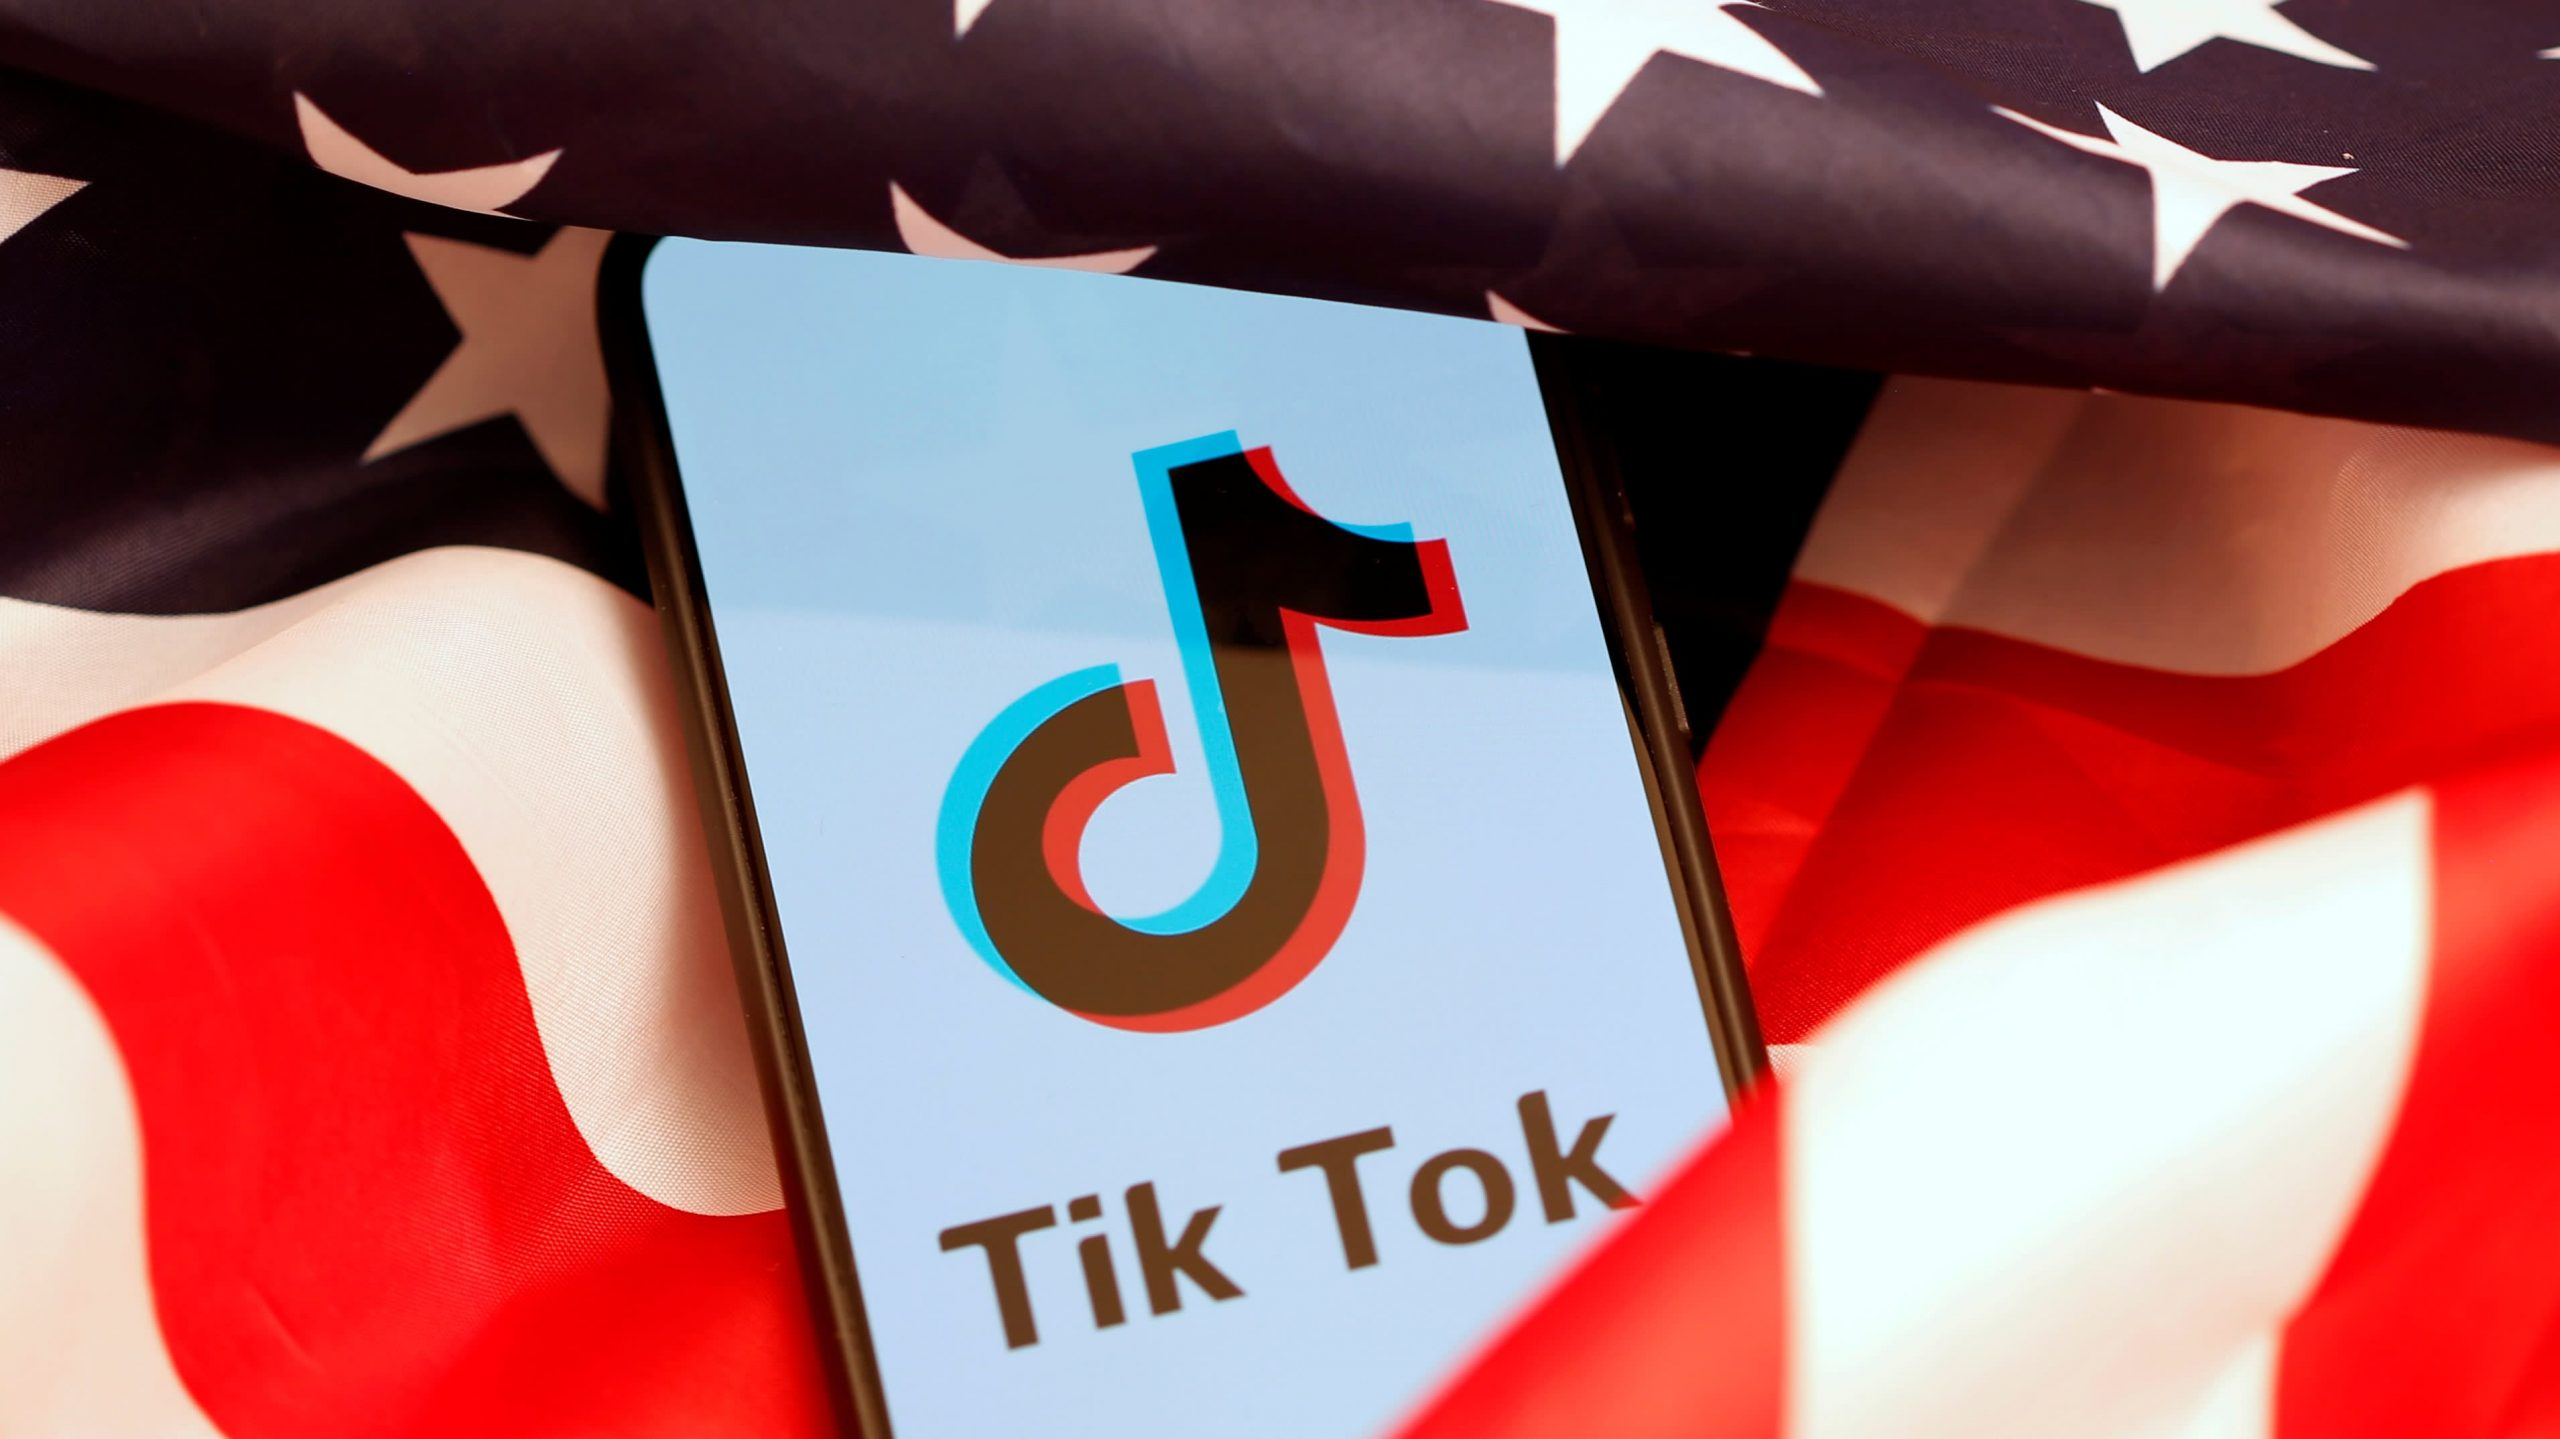 Trump pushes the TikTok ban